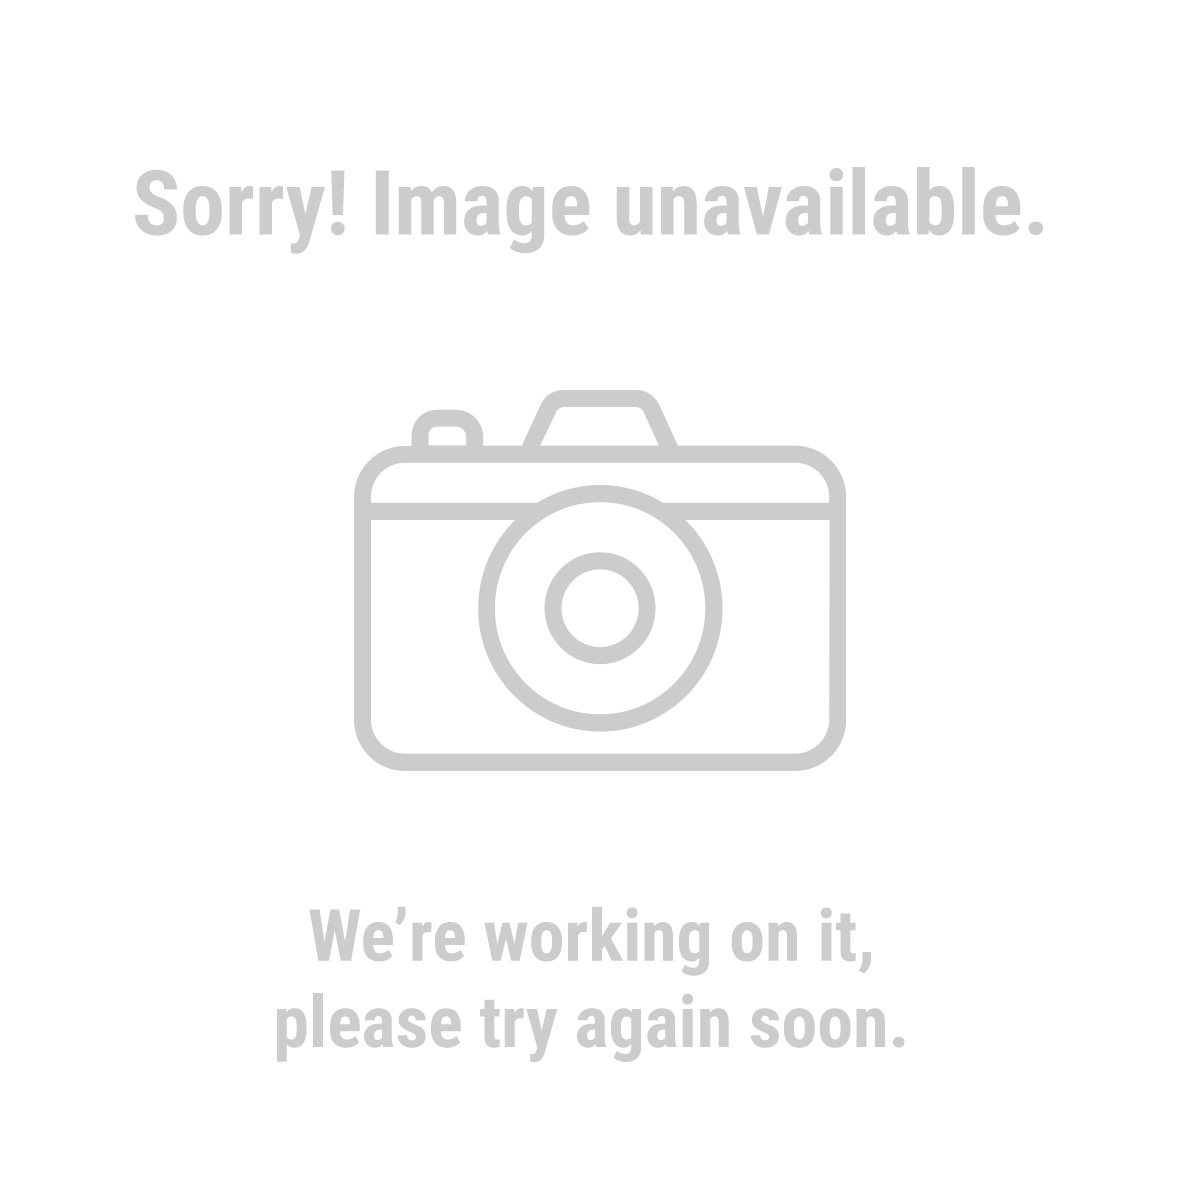 96479 Solid Rubber Wheel Chock